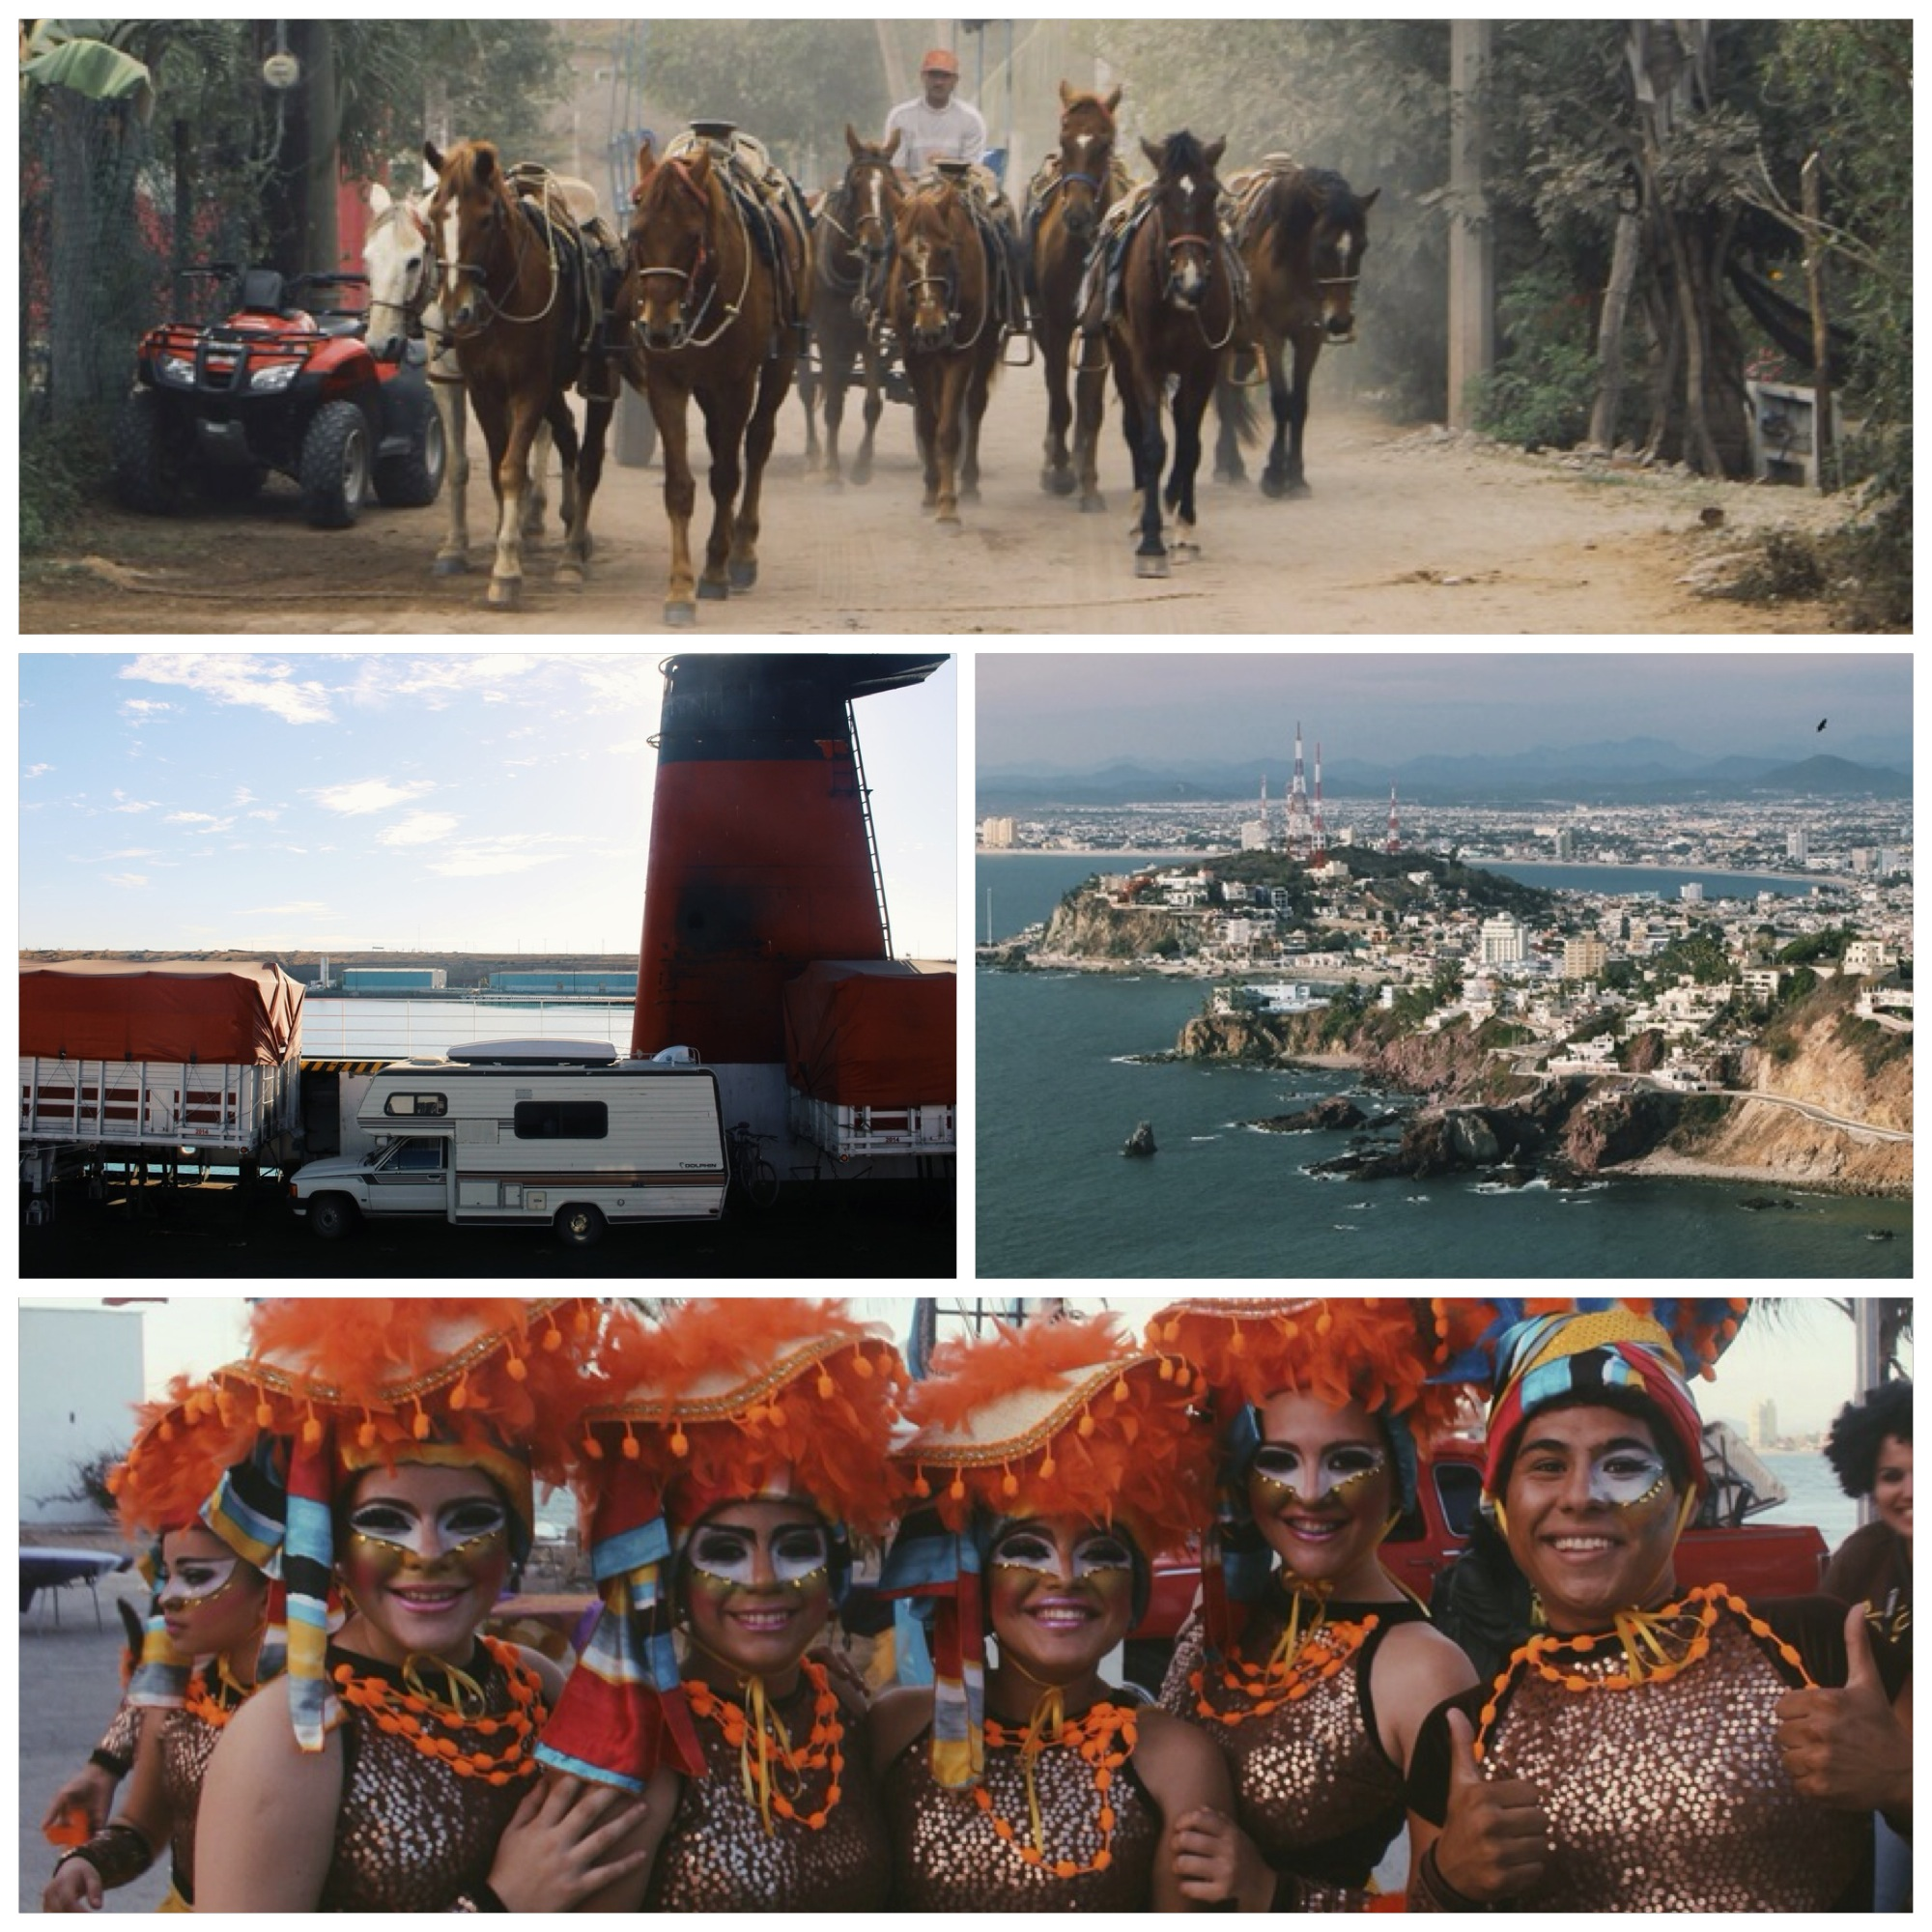 Horses onIsla de la Piedra.  Taking the Ferry from Baja, Mazatlan as seen from the lighthouse, and Carnaval!